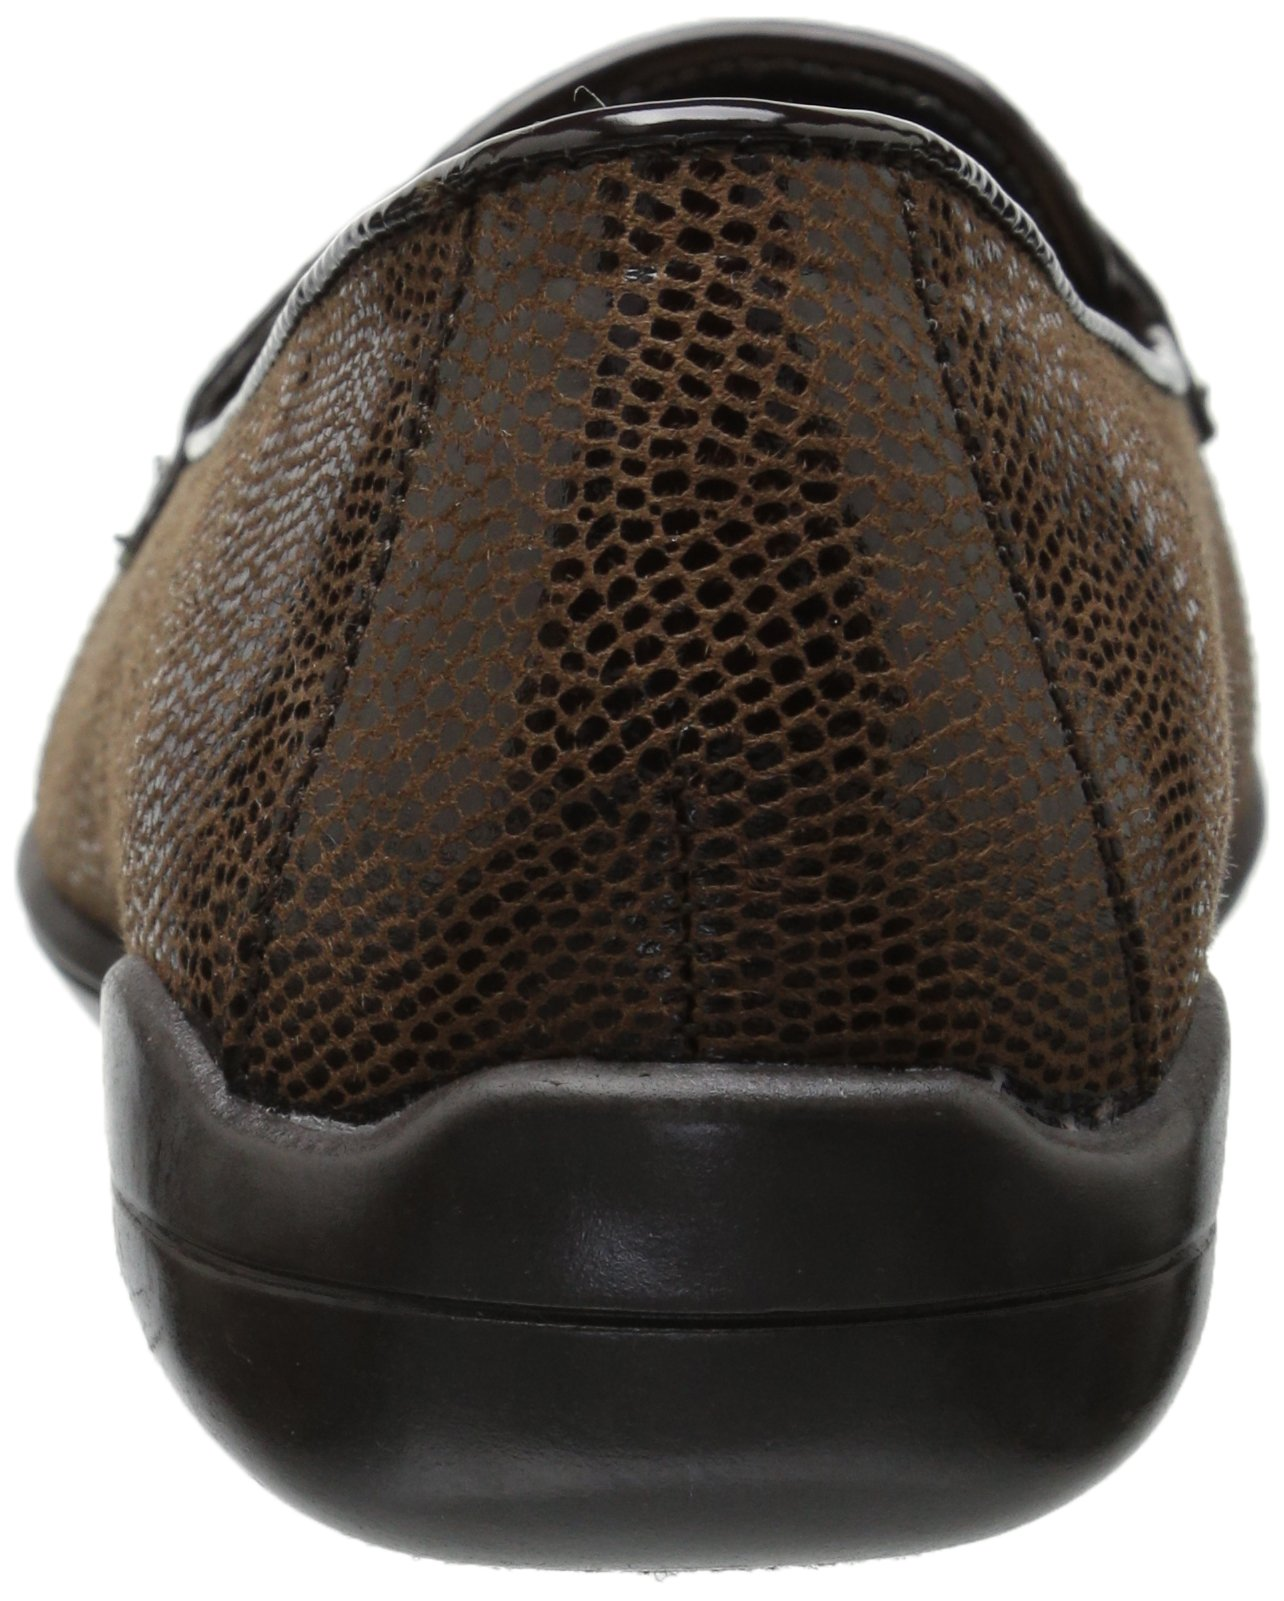 Soft Style by Hush Puppies Women's Daly Penny Loafer, Dark Brown Lizard/Patent, 8.5 W US by Soft Style (Image #2)